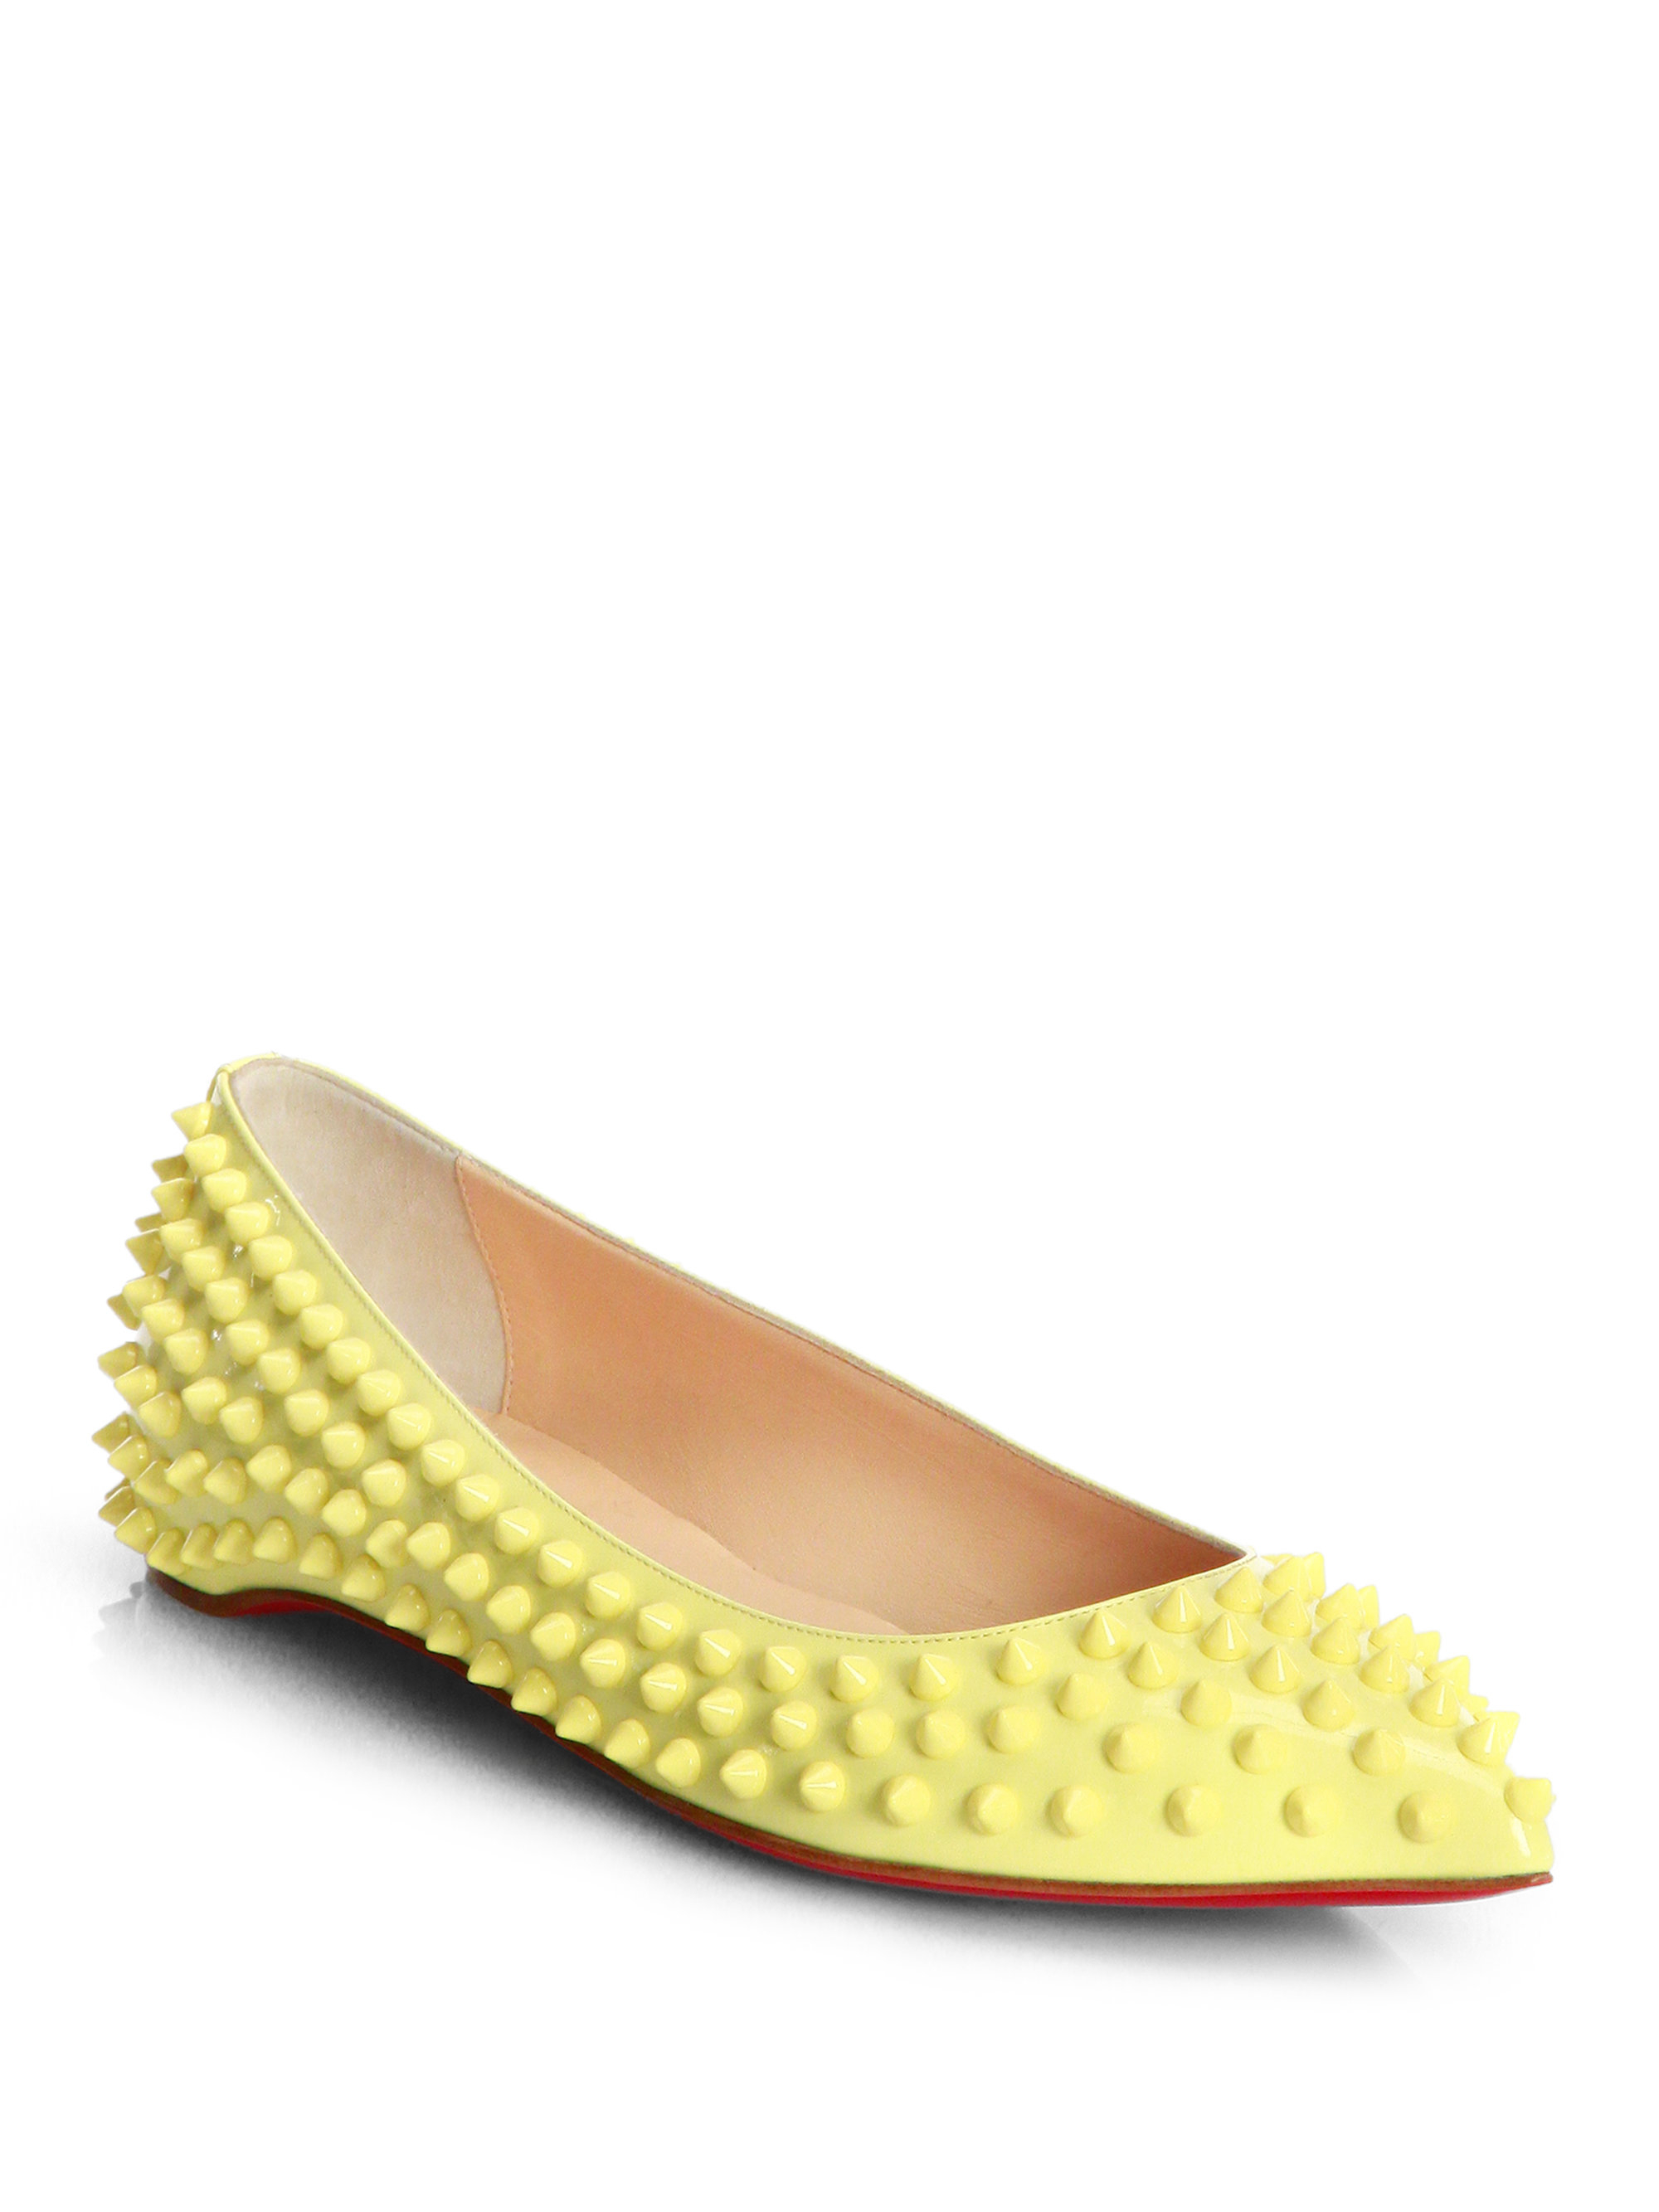 b1ce00dcc22 Christian Louboutin Yellow Pigalle Spiked Patent Leather Flats